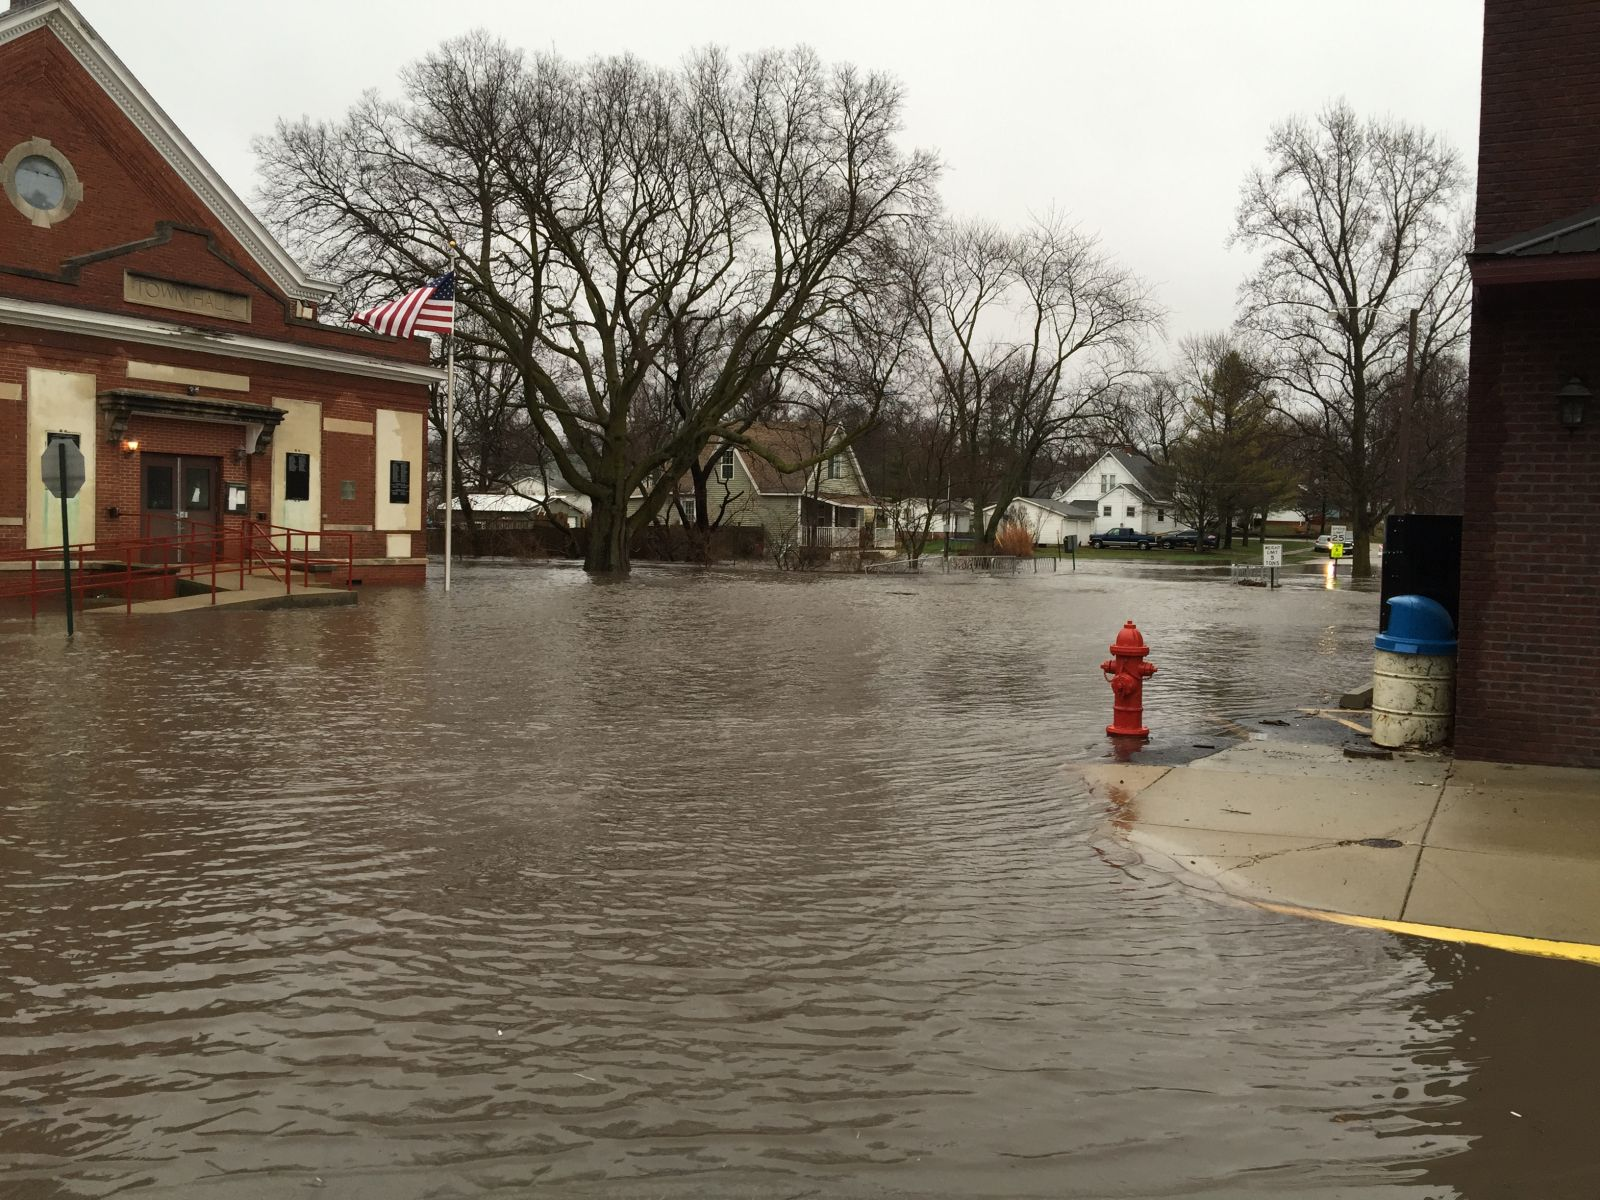 Flood image by Pete Mantell, Sydney, IL  Dec. 28, 2015